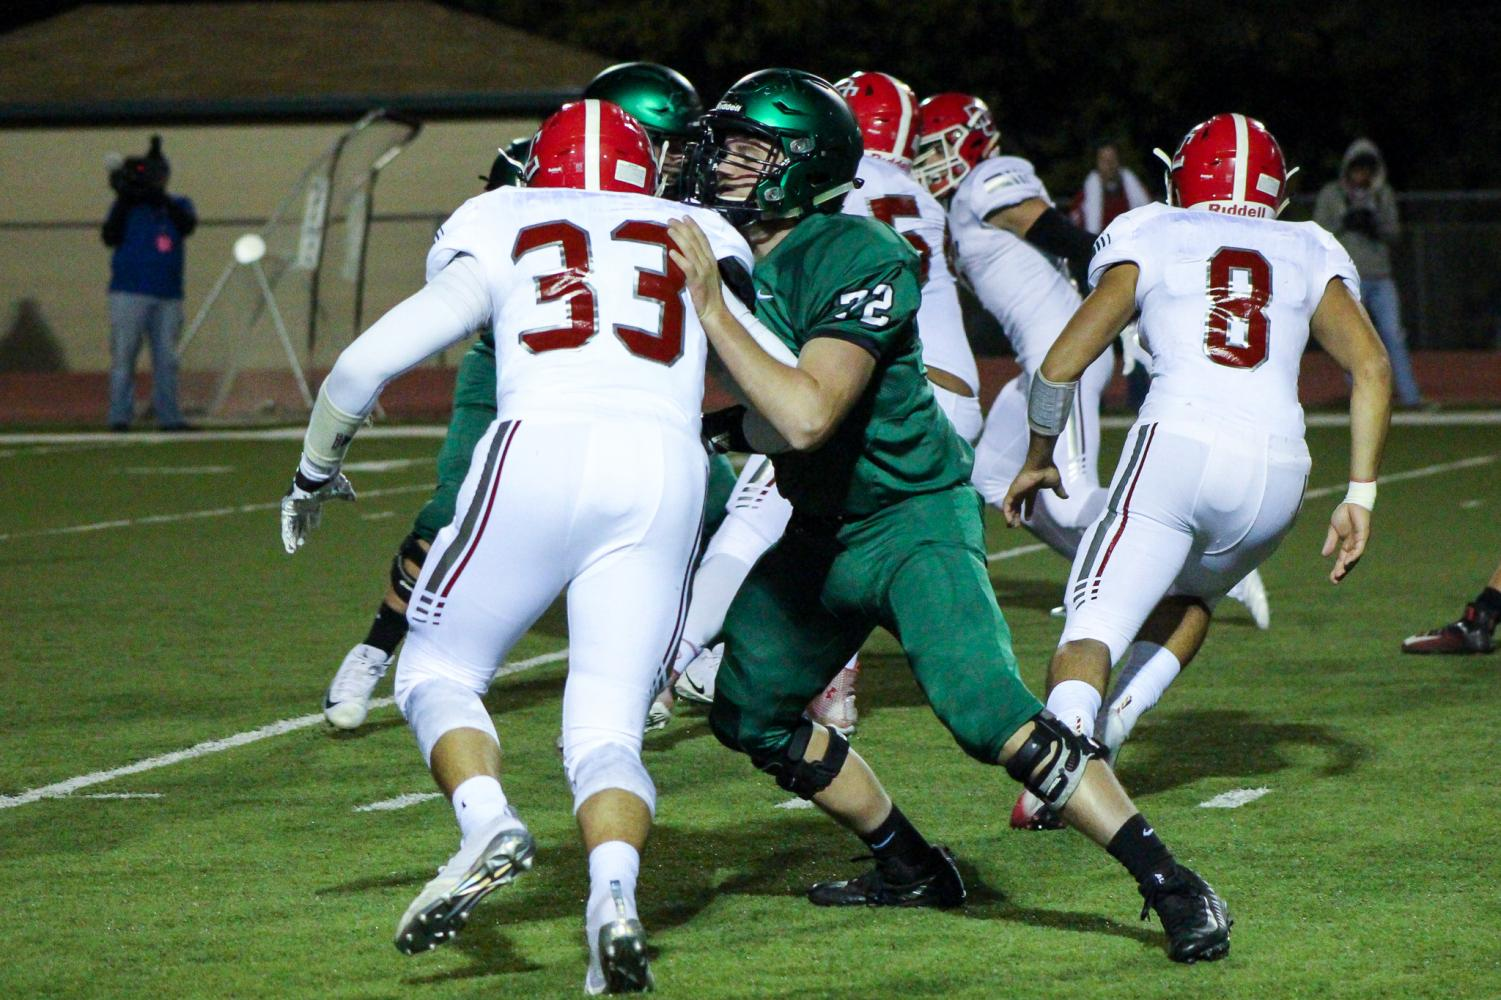 Senior+Bryce+Atkinson+pushes+his+opponent+away+from+the+ball+carrier.